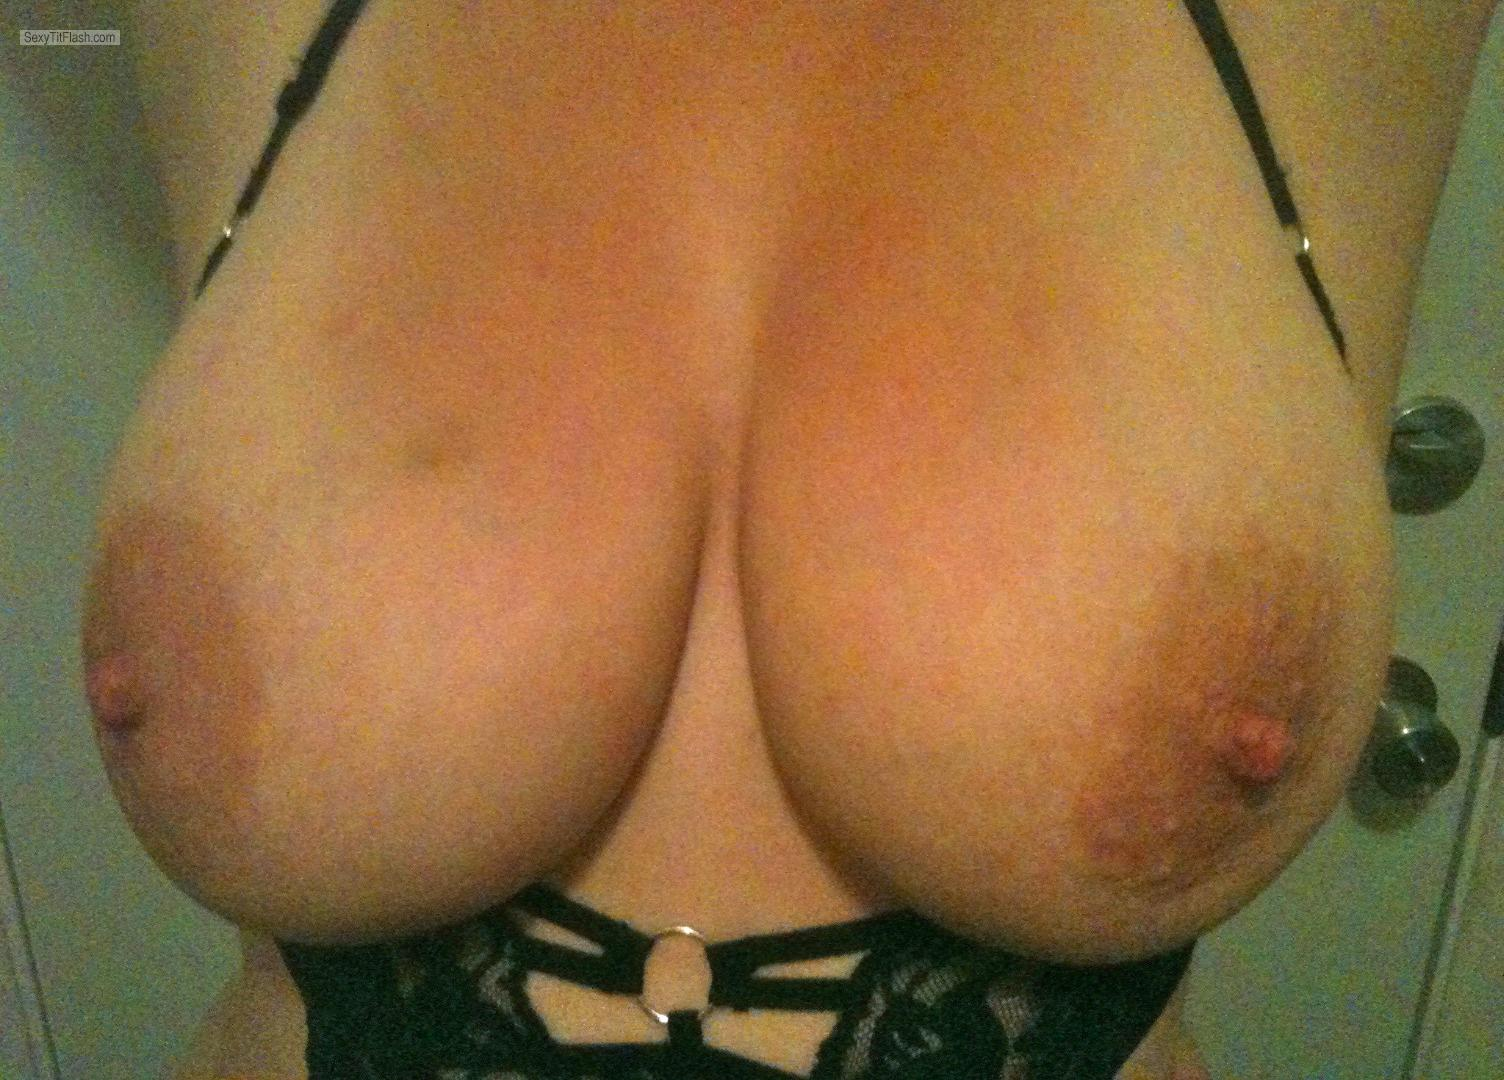 Tit Flash: My Big Tits - Bigtitsfuckya from United States